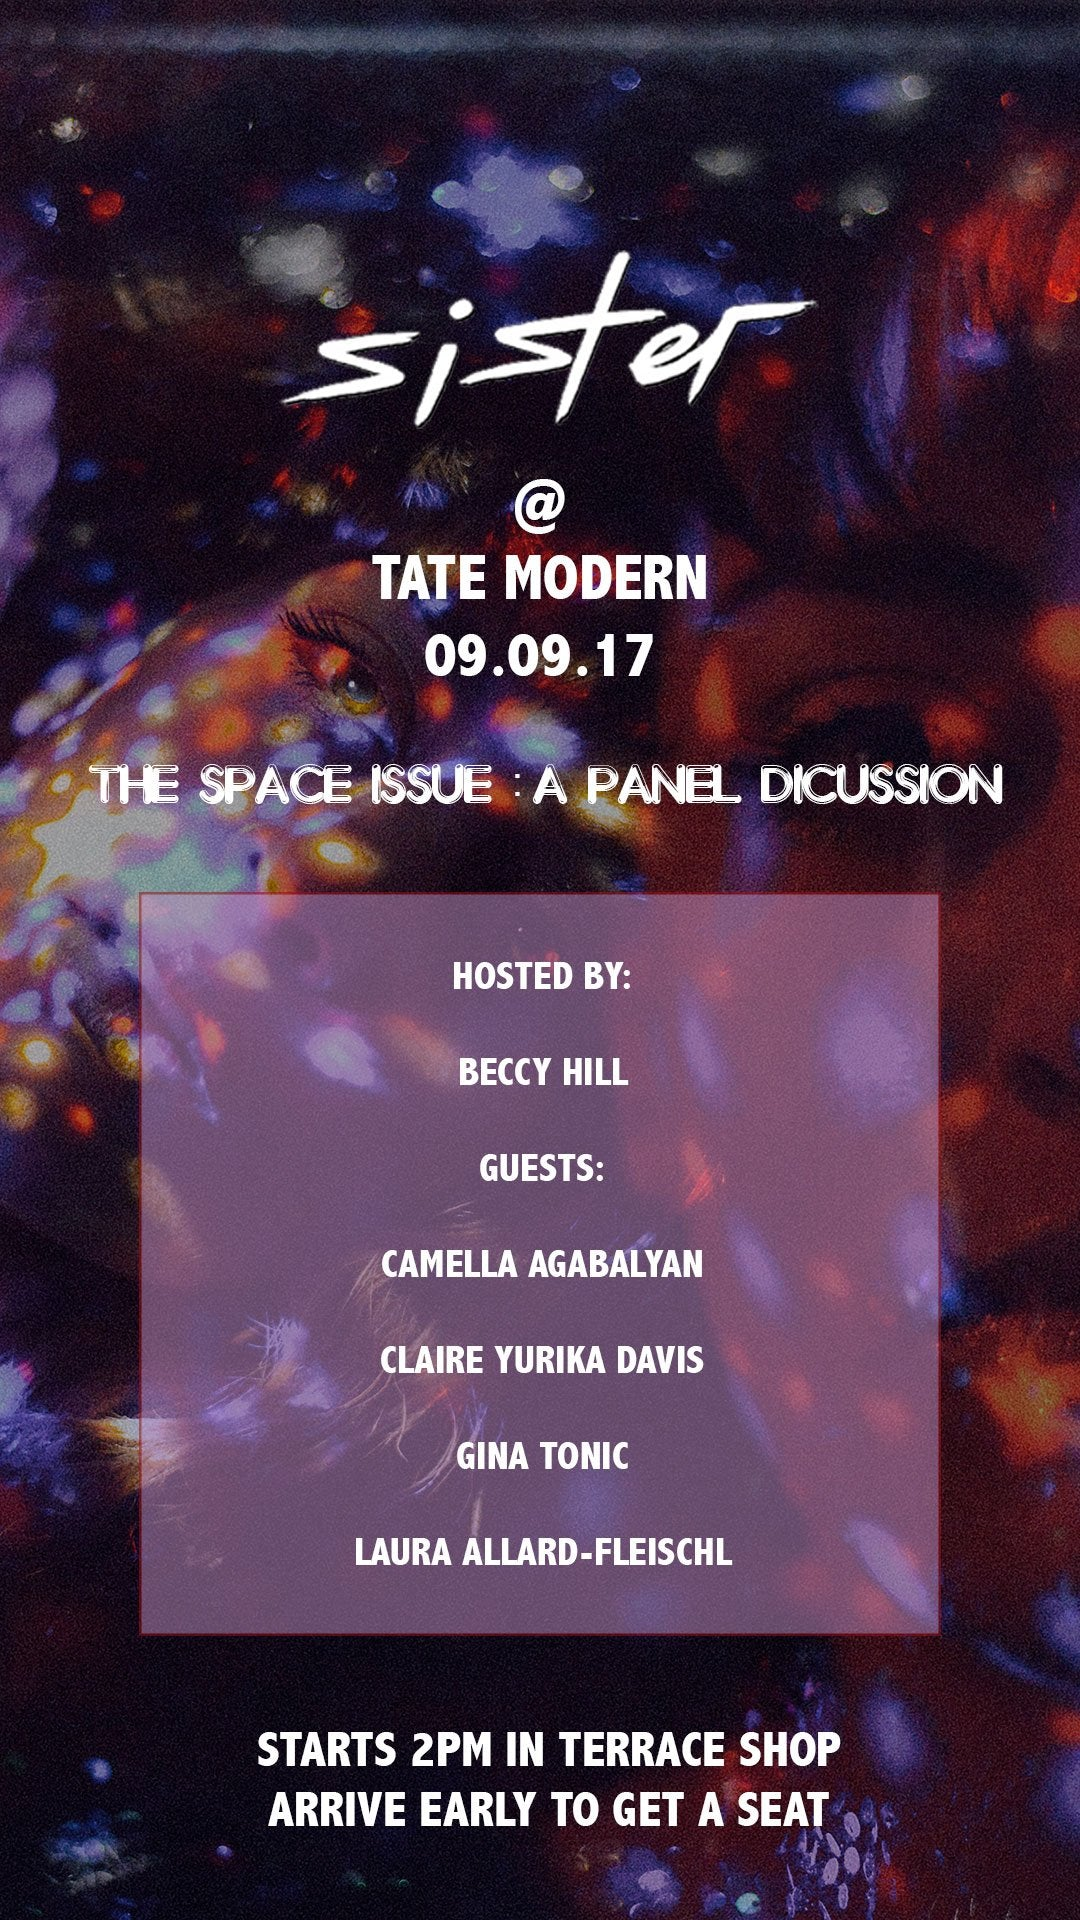 The Space Issue Launch & Panel Discussion